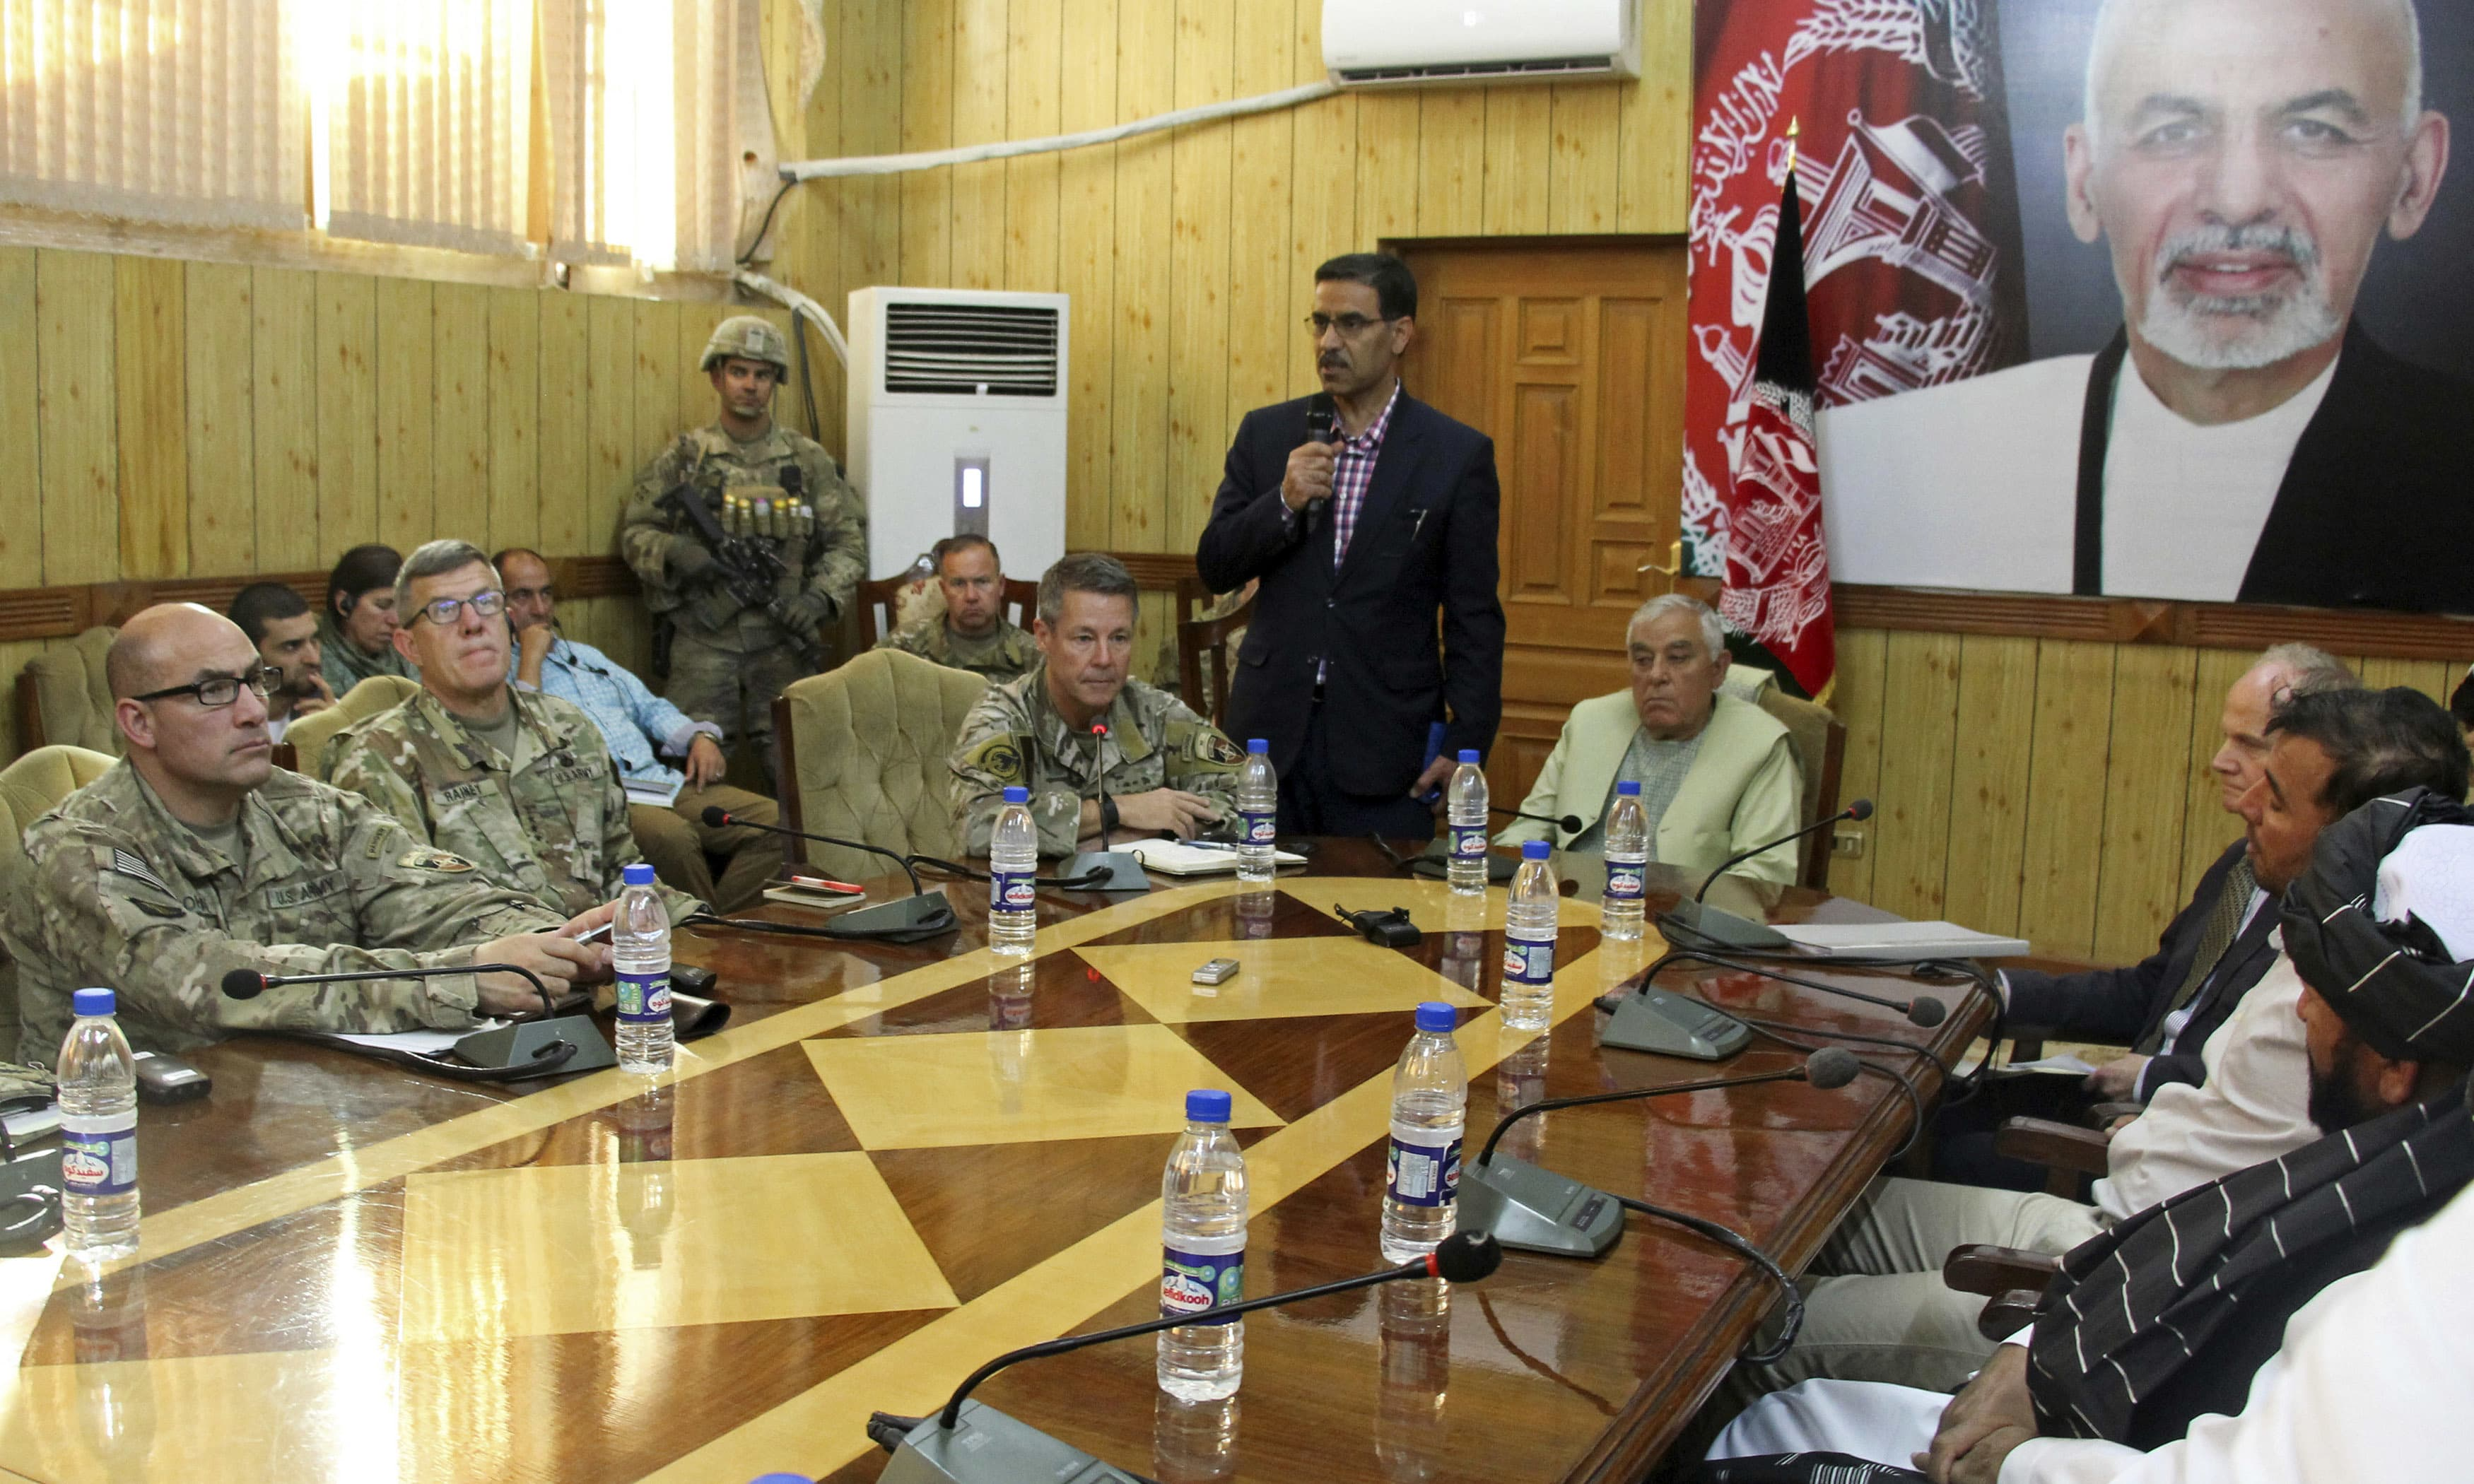 Head of Nato troops in Afghanistan Gen Scott Miller, Kandahar Governor Zalmay Wesa and their delegations attend a security conference in Kandahar. —AP